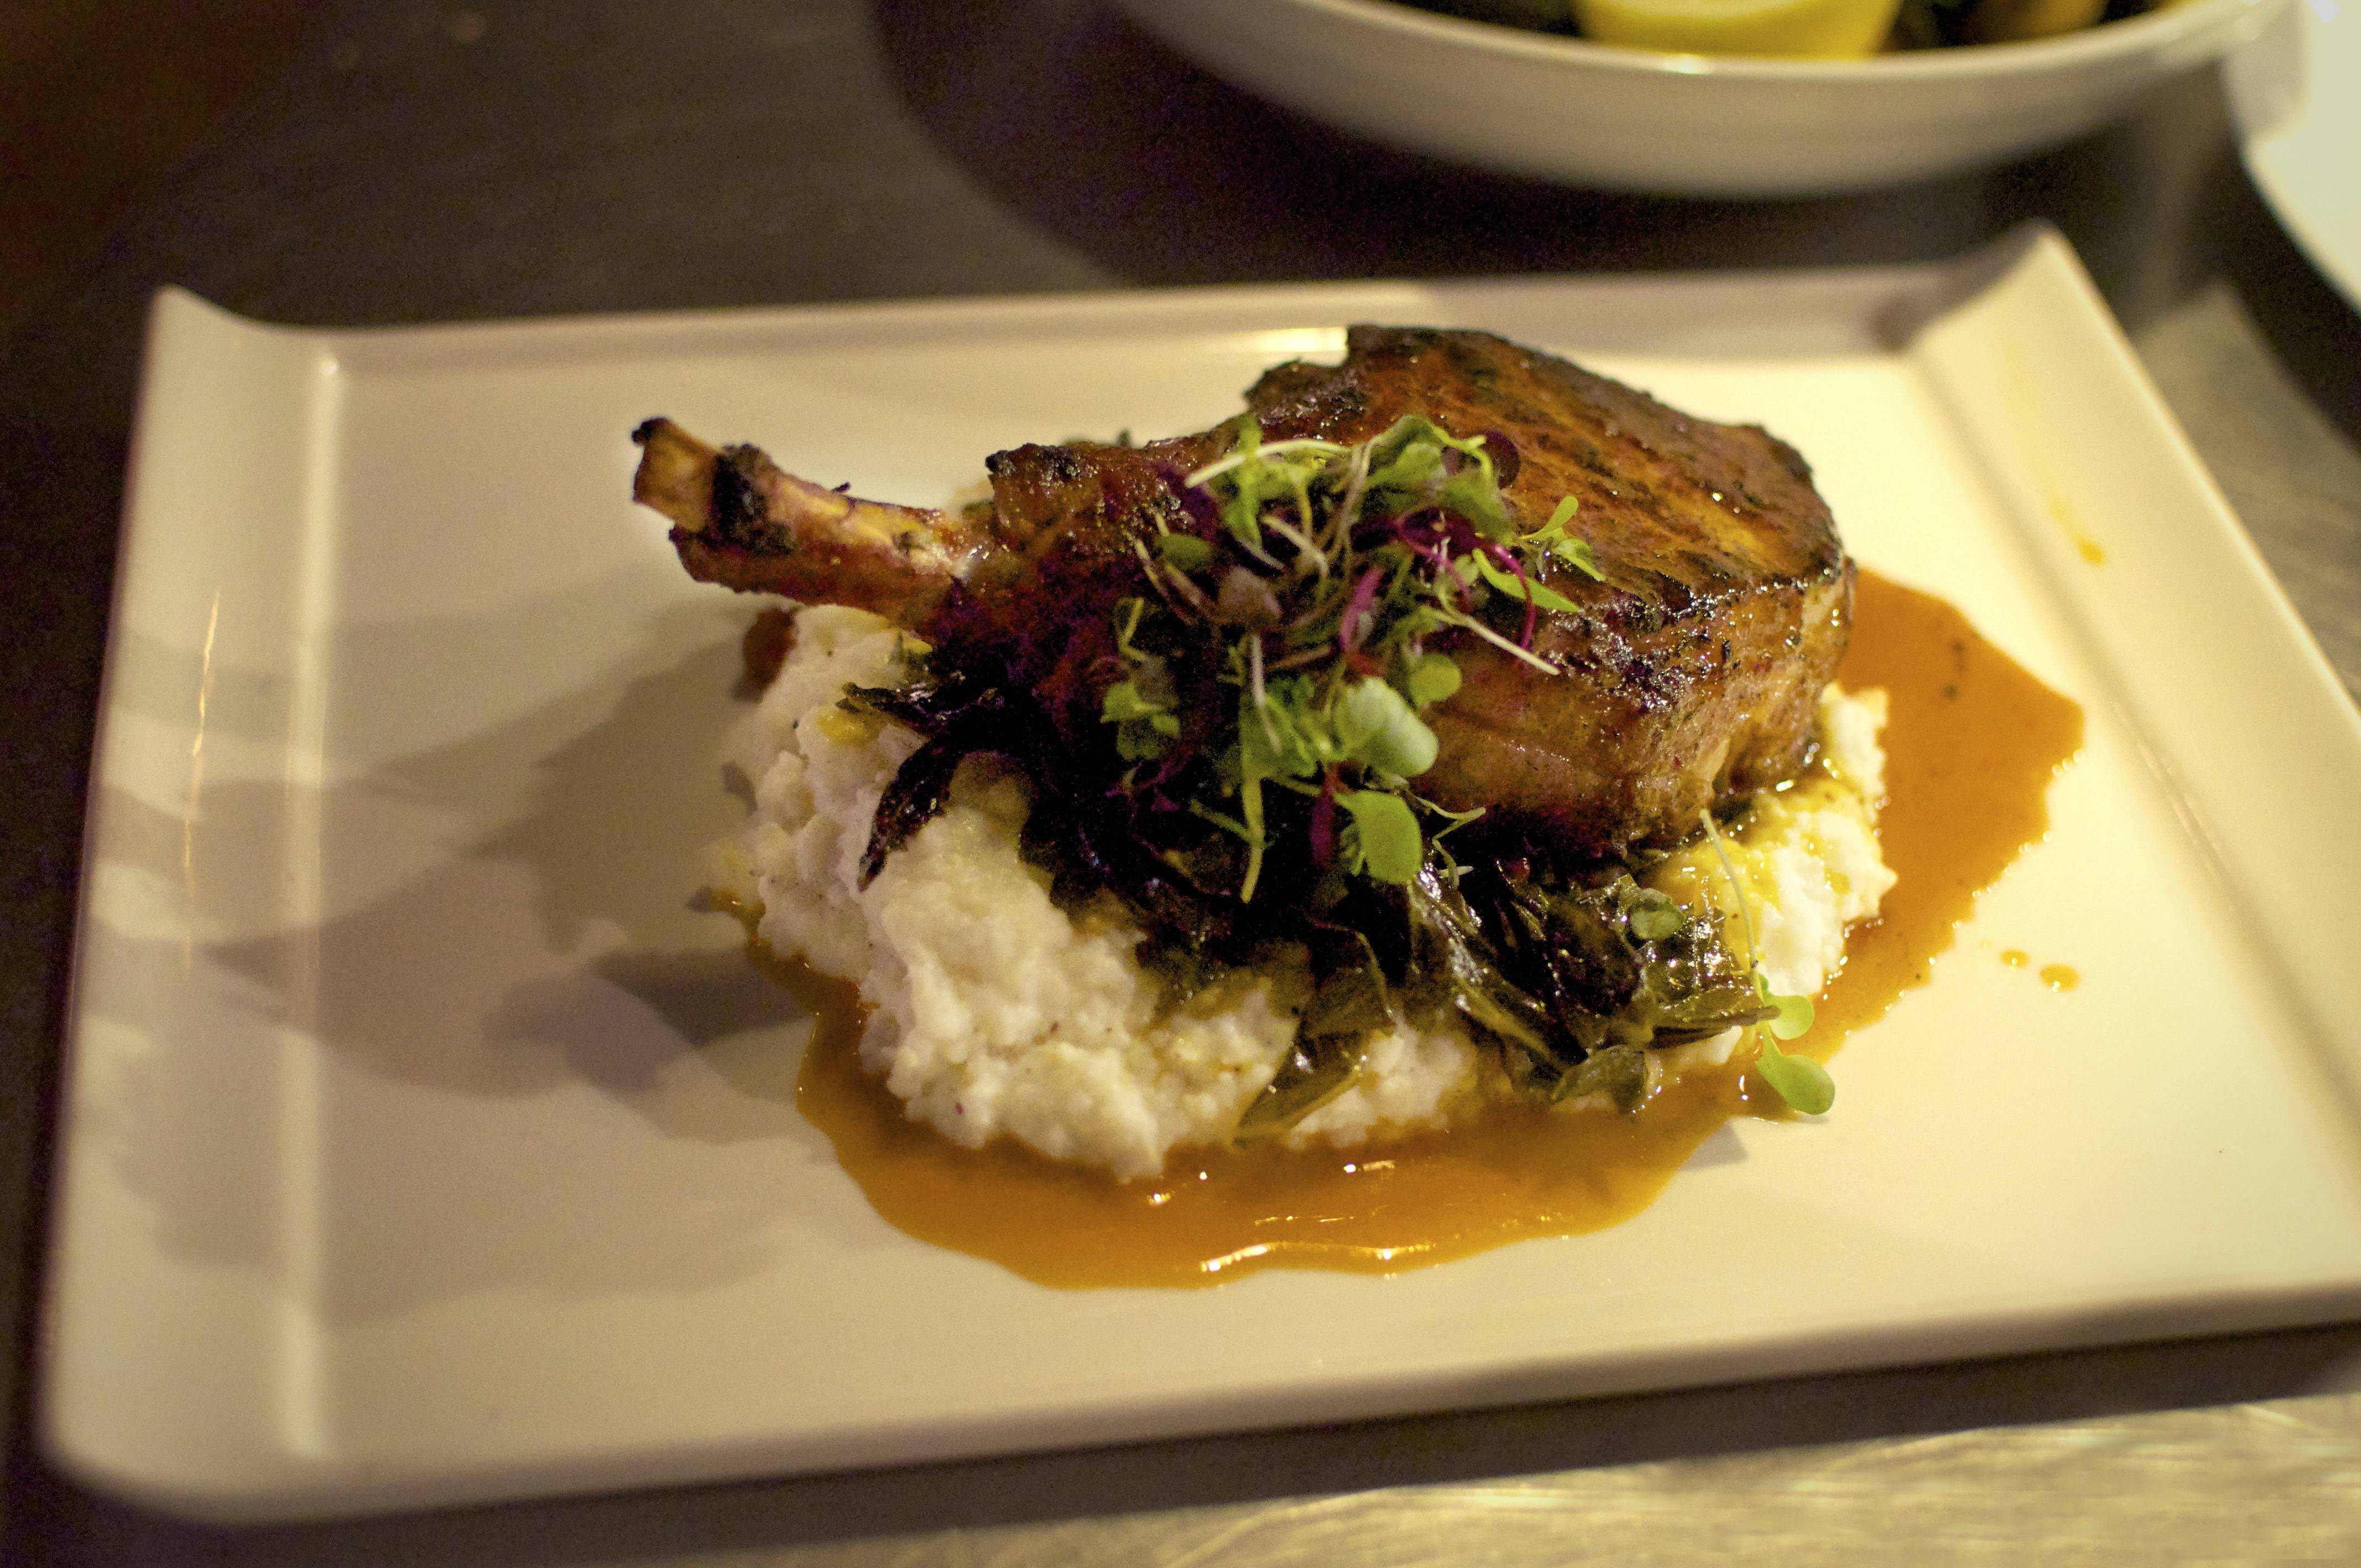 Diners at the Admiral in Asheville, N.C., can find dishes like the Heritage Farms Pork Chop on the ever-changing menu.